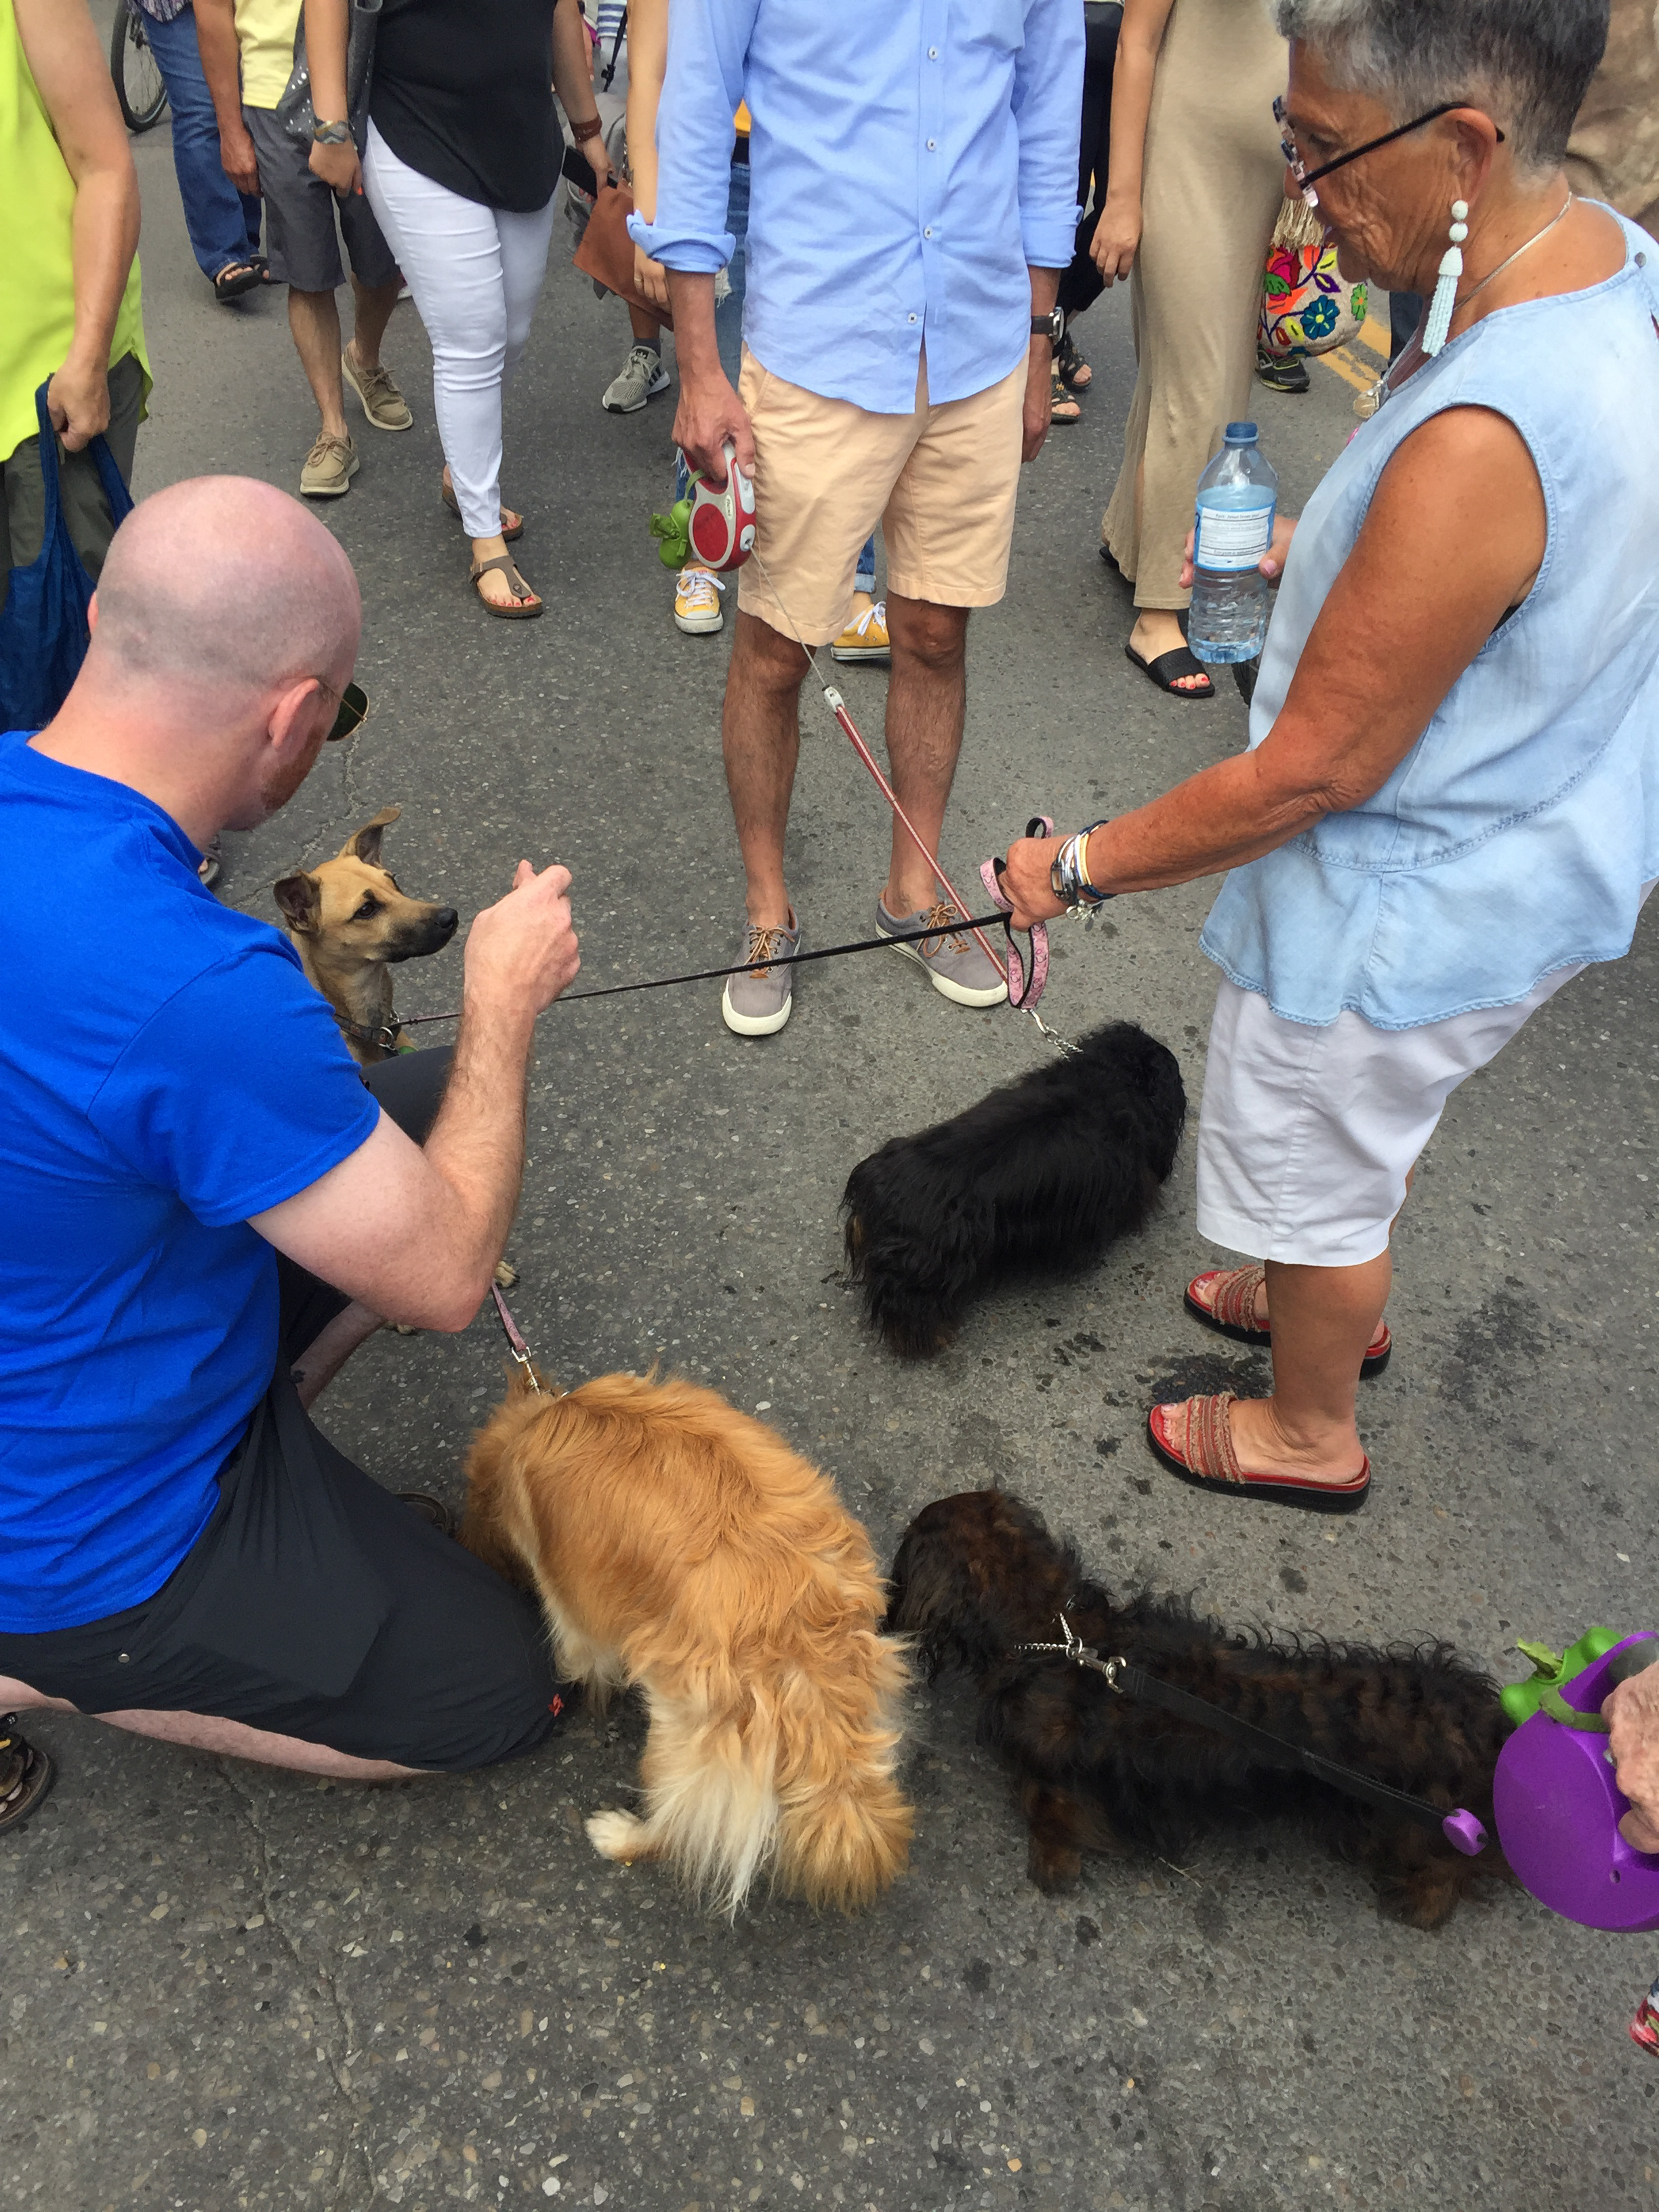 Inglewood Sunfest was the place to be if you like dogs. Our tent had a lot of canine visitors.